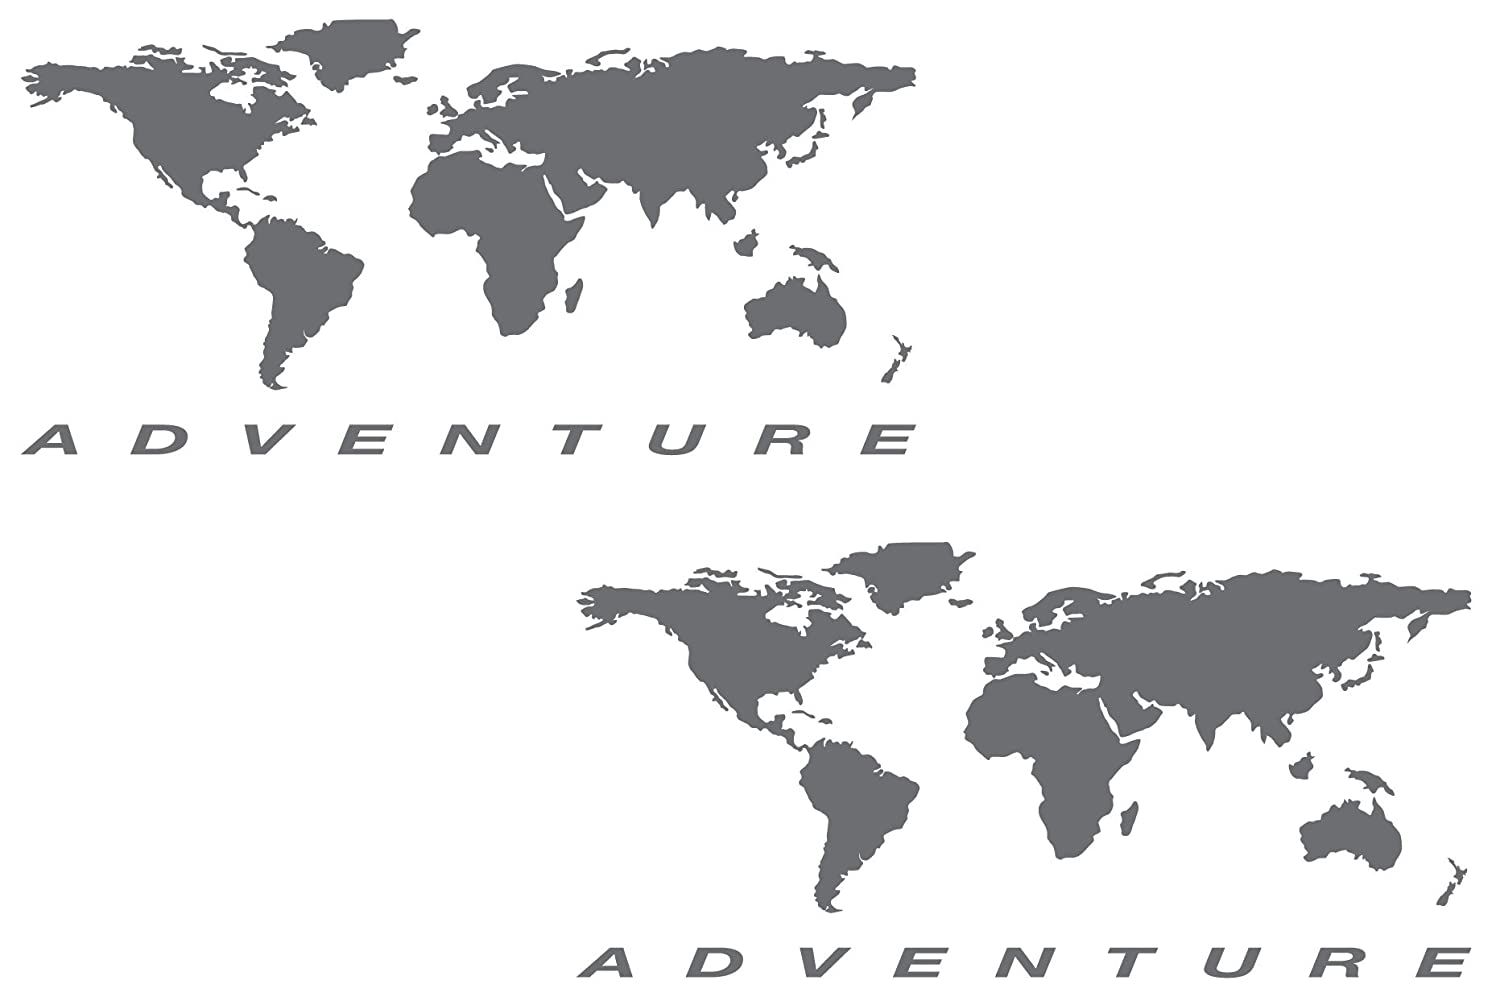 The Pixel Hut gs000037b Adventure Motorcycle Decal Kit 'World Adventure Map' for Touratech Panniers - Grey gs00037b